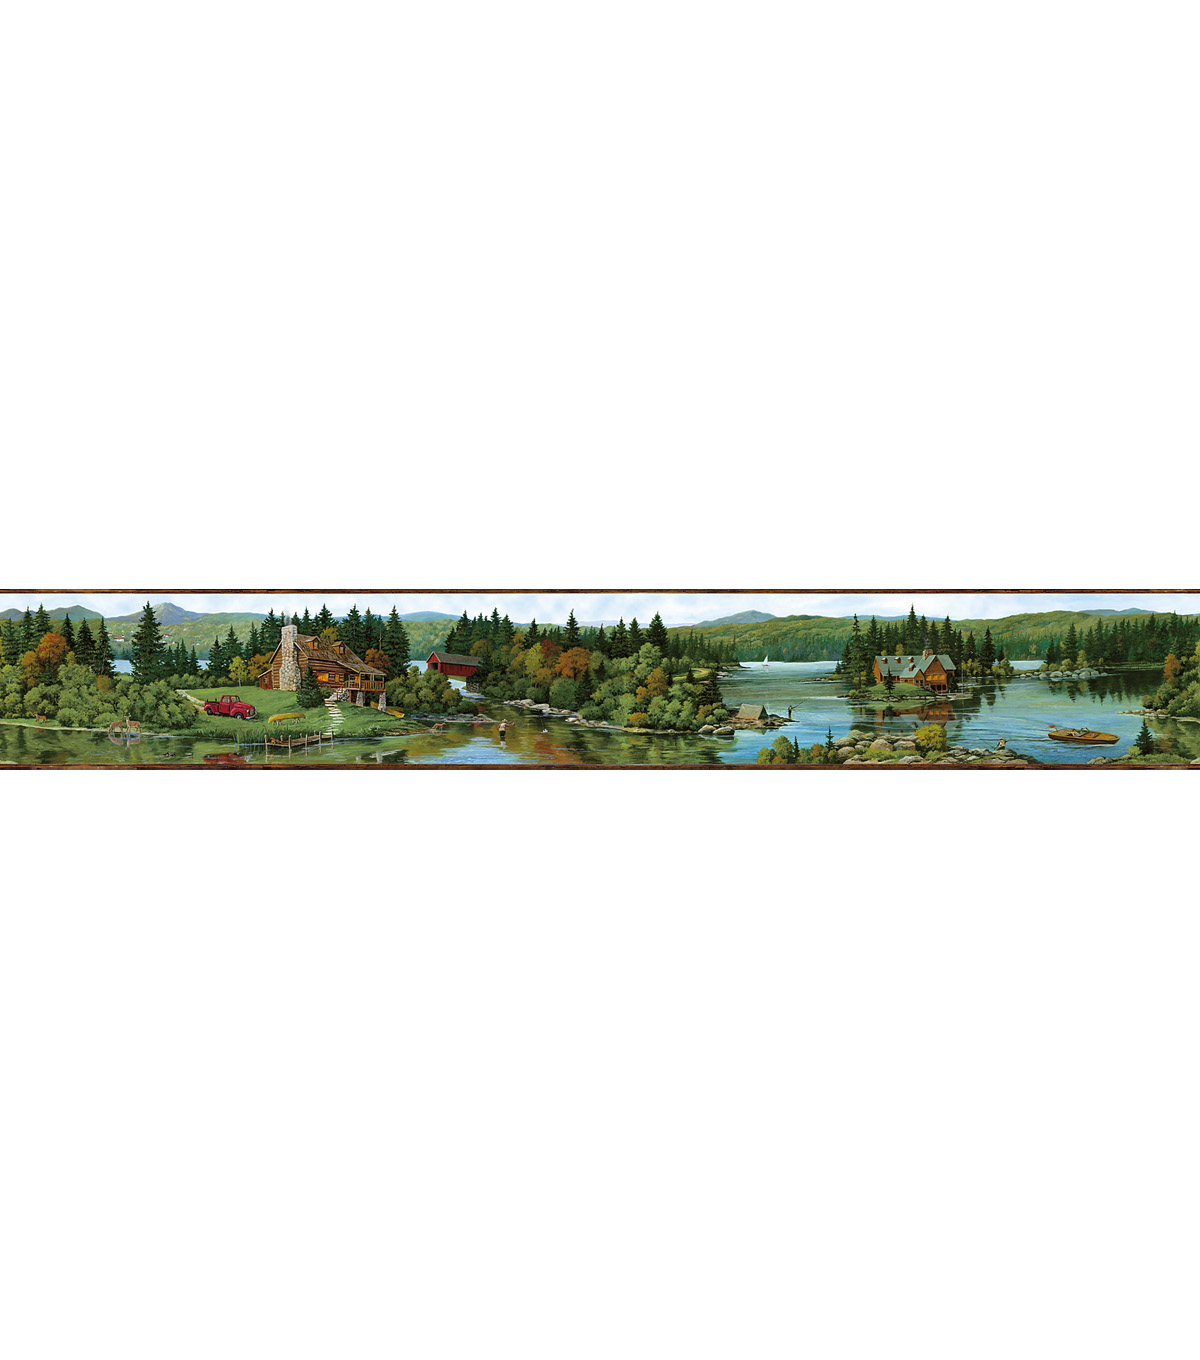 Log Lake Brown Lakeside Cabin Wallpaper Border SampleLog Lake Brown 1200x1360